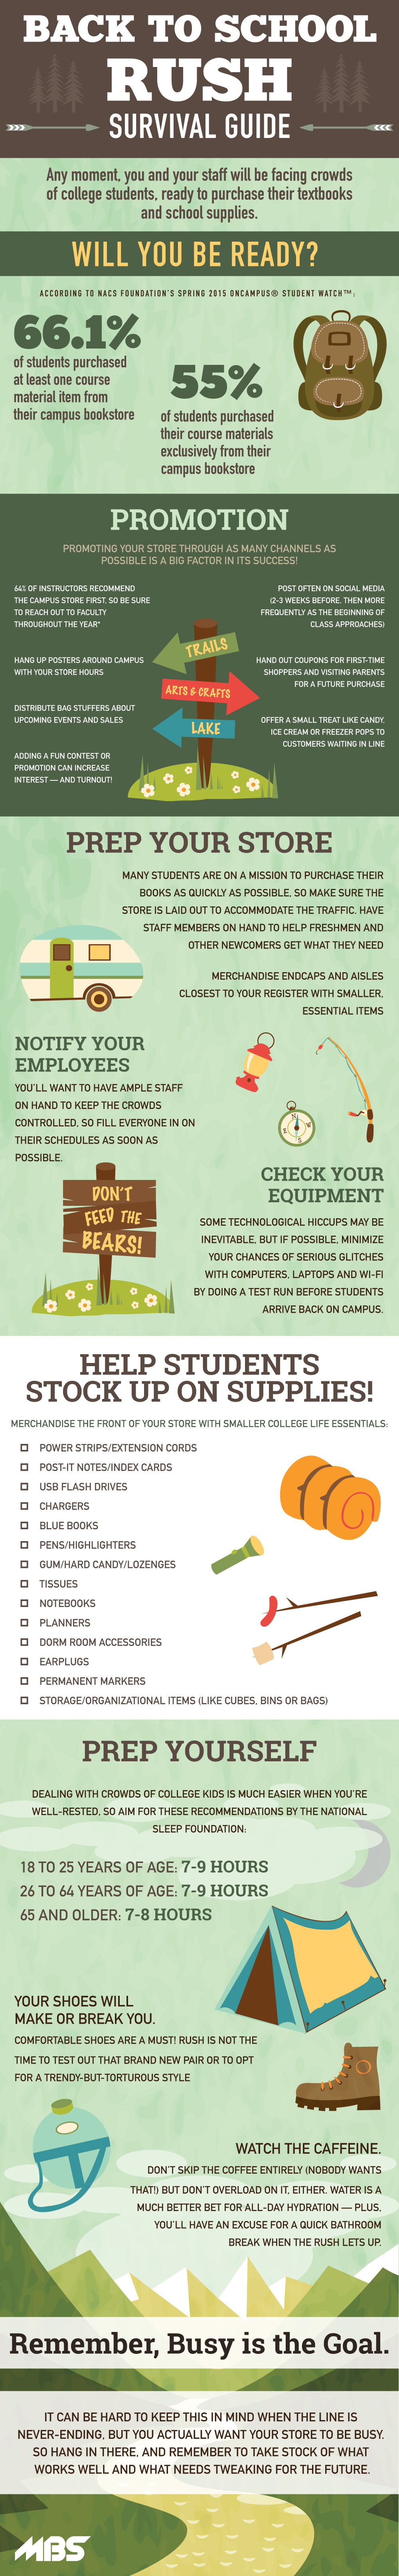 2017 Spring Rush Survival Guide; Are You Ready? - [Infographic]